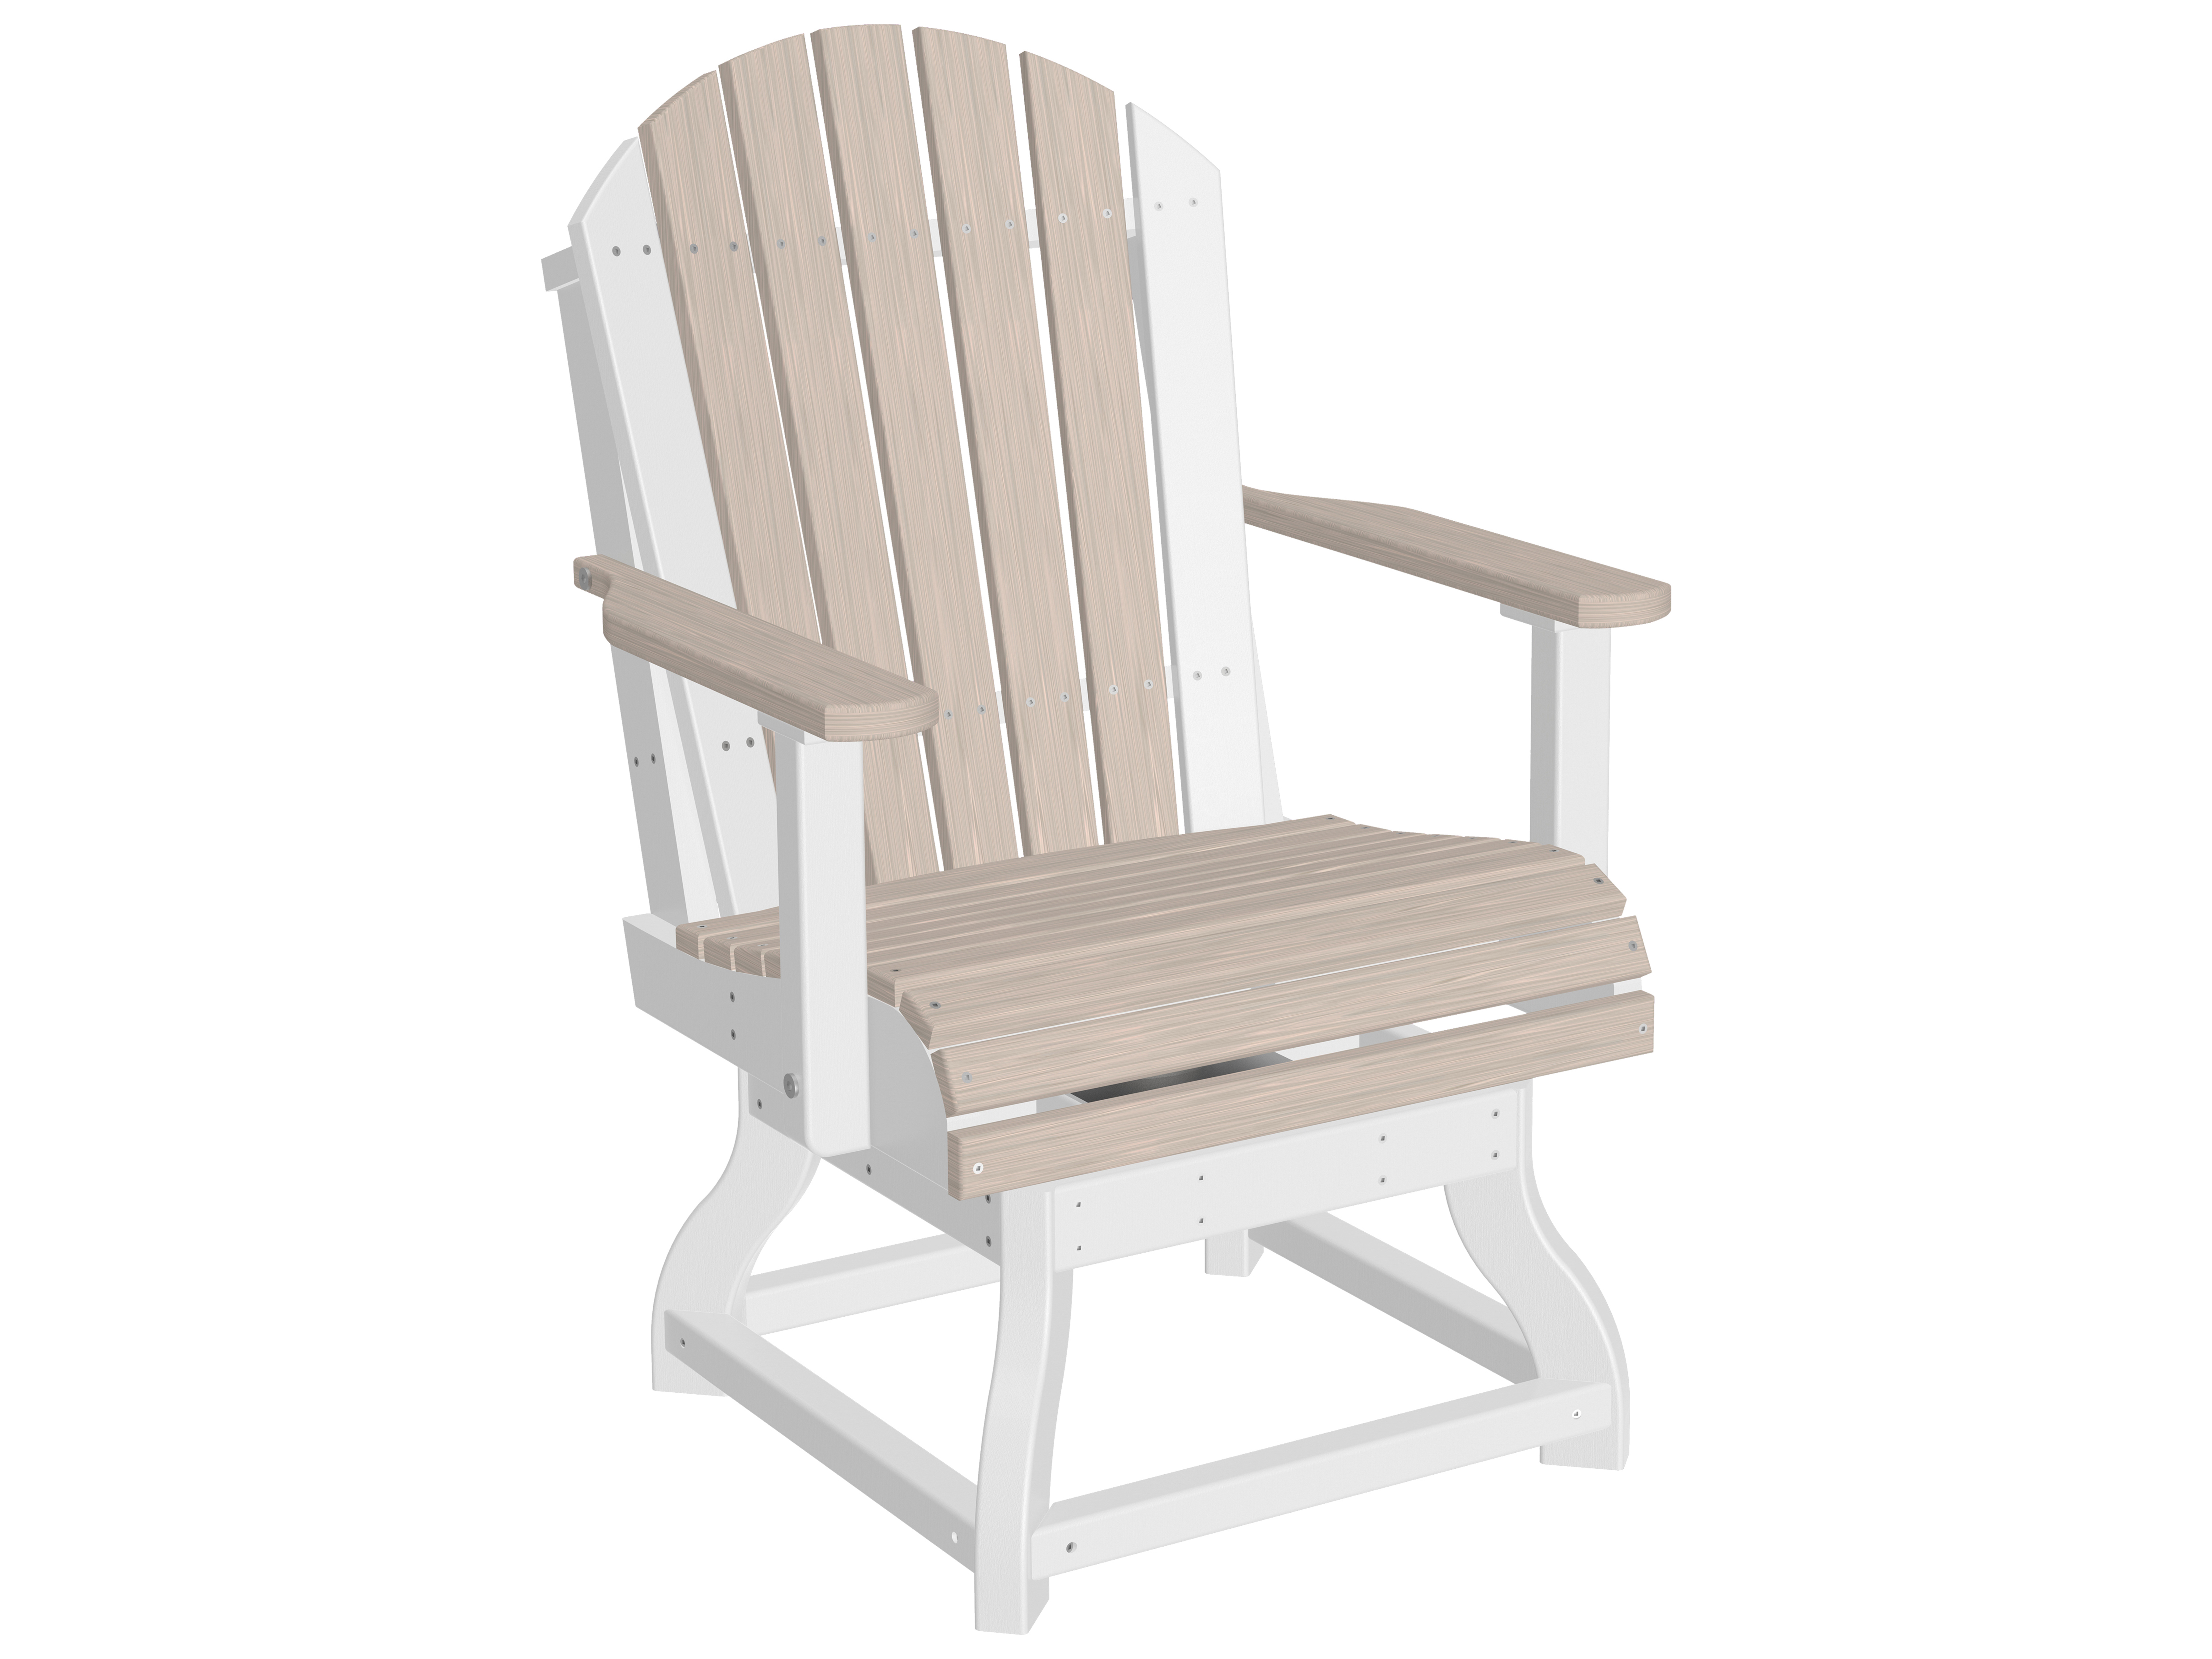 Luxcraft recycled plastic adirondack swivel dining height chair luxpascdining - Chaise adirondack plastique recycle costco ...